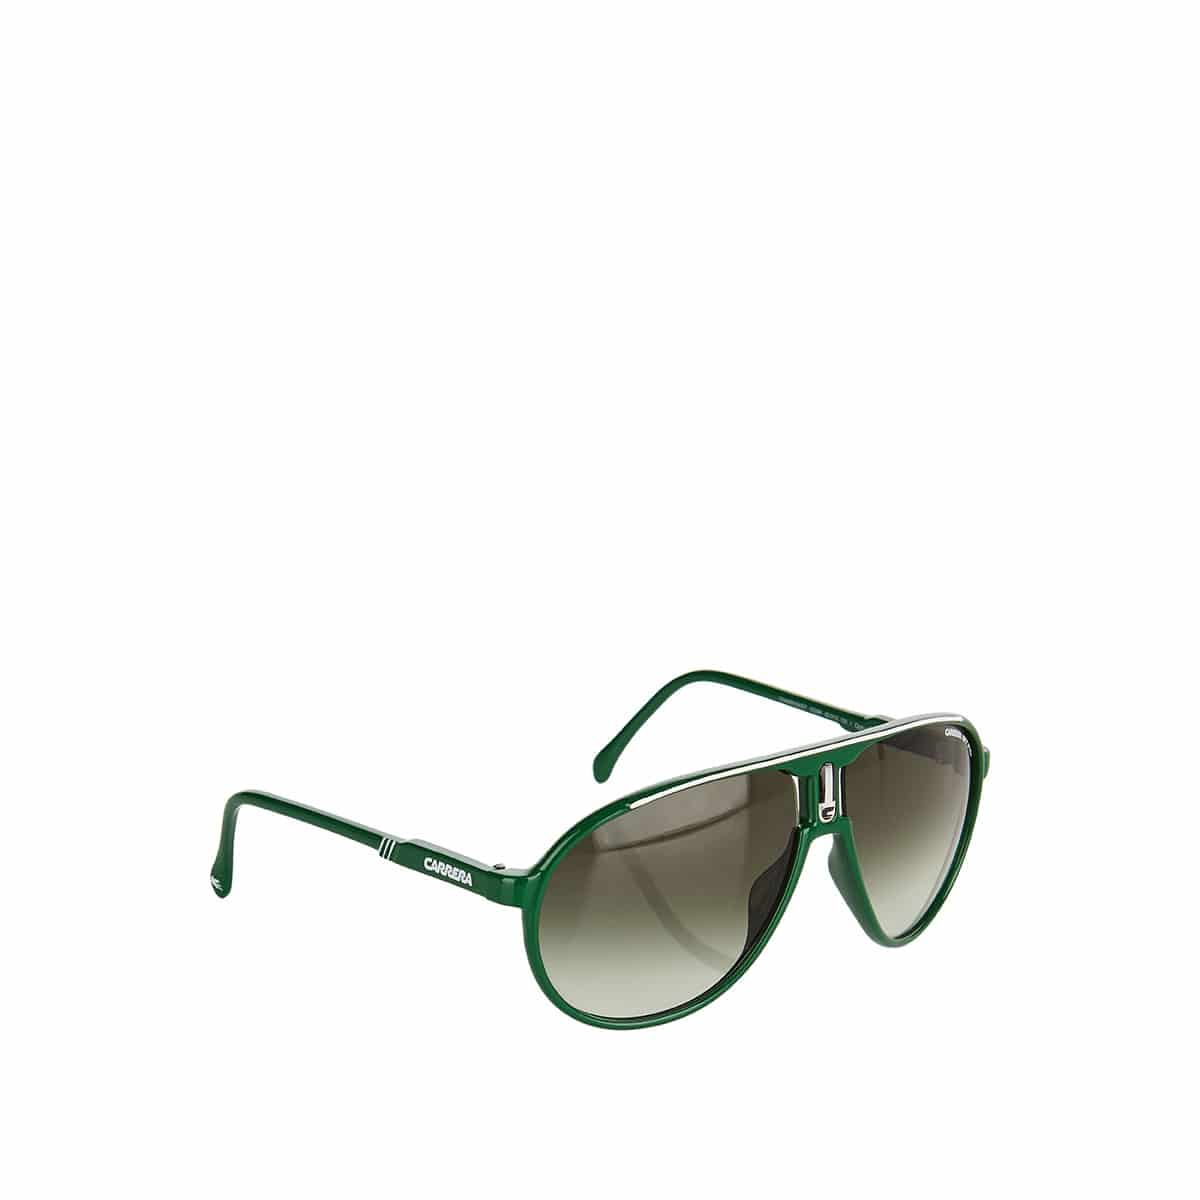 Etro X Carrera Champion sunglasses